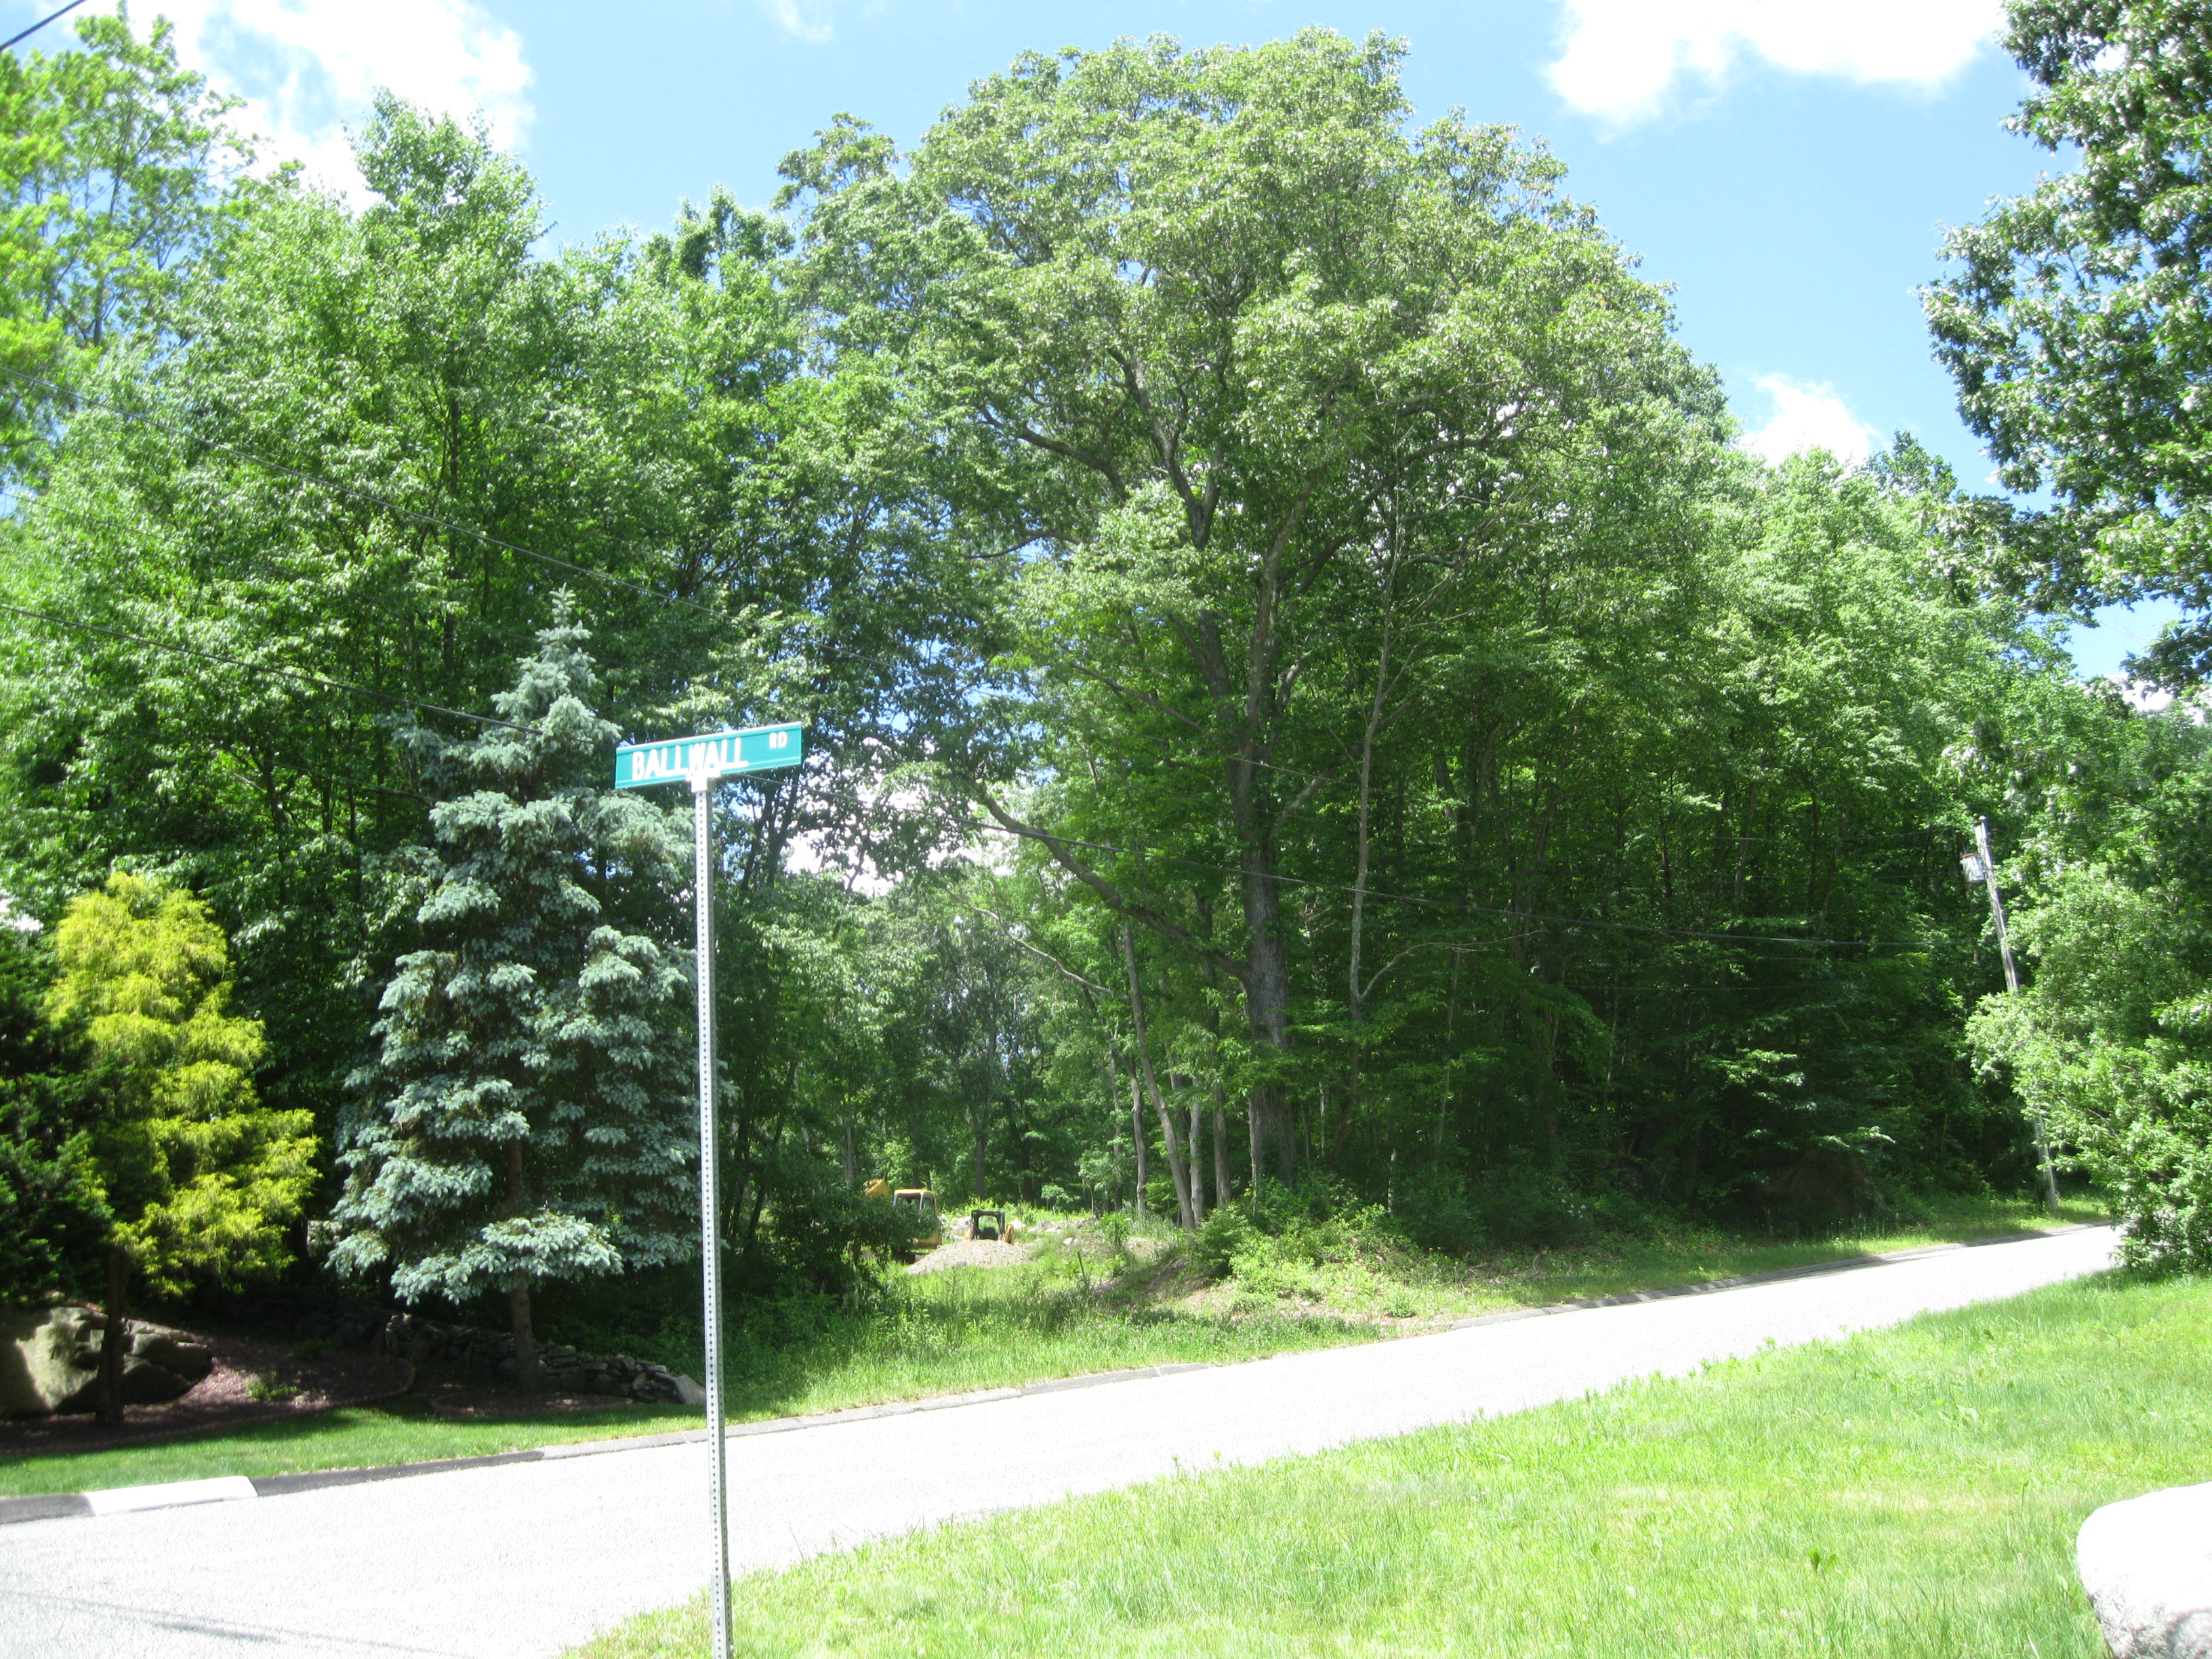 Land for Sale at Approved Subdivision Lot in Established Easton Neighborhood 59 Tranquility Drive Easton, Connecticut 06612 United States